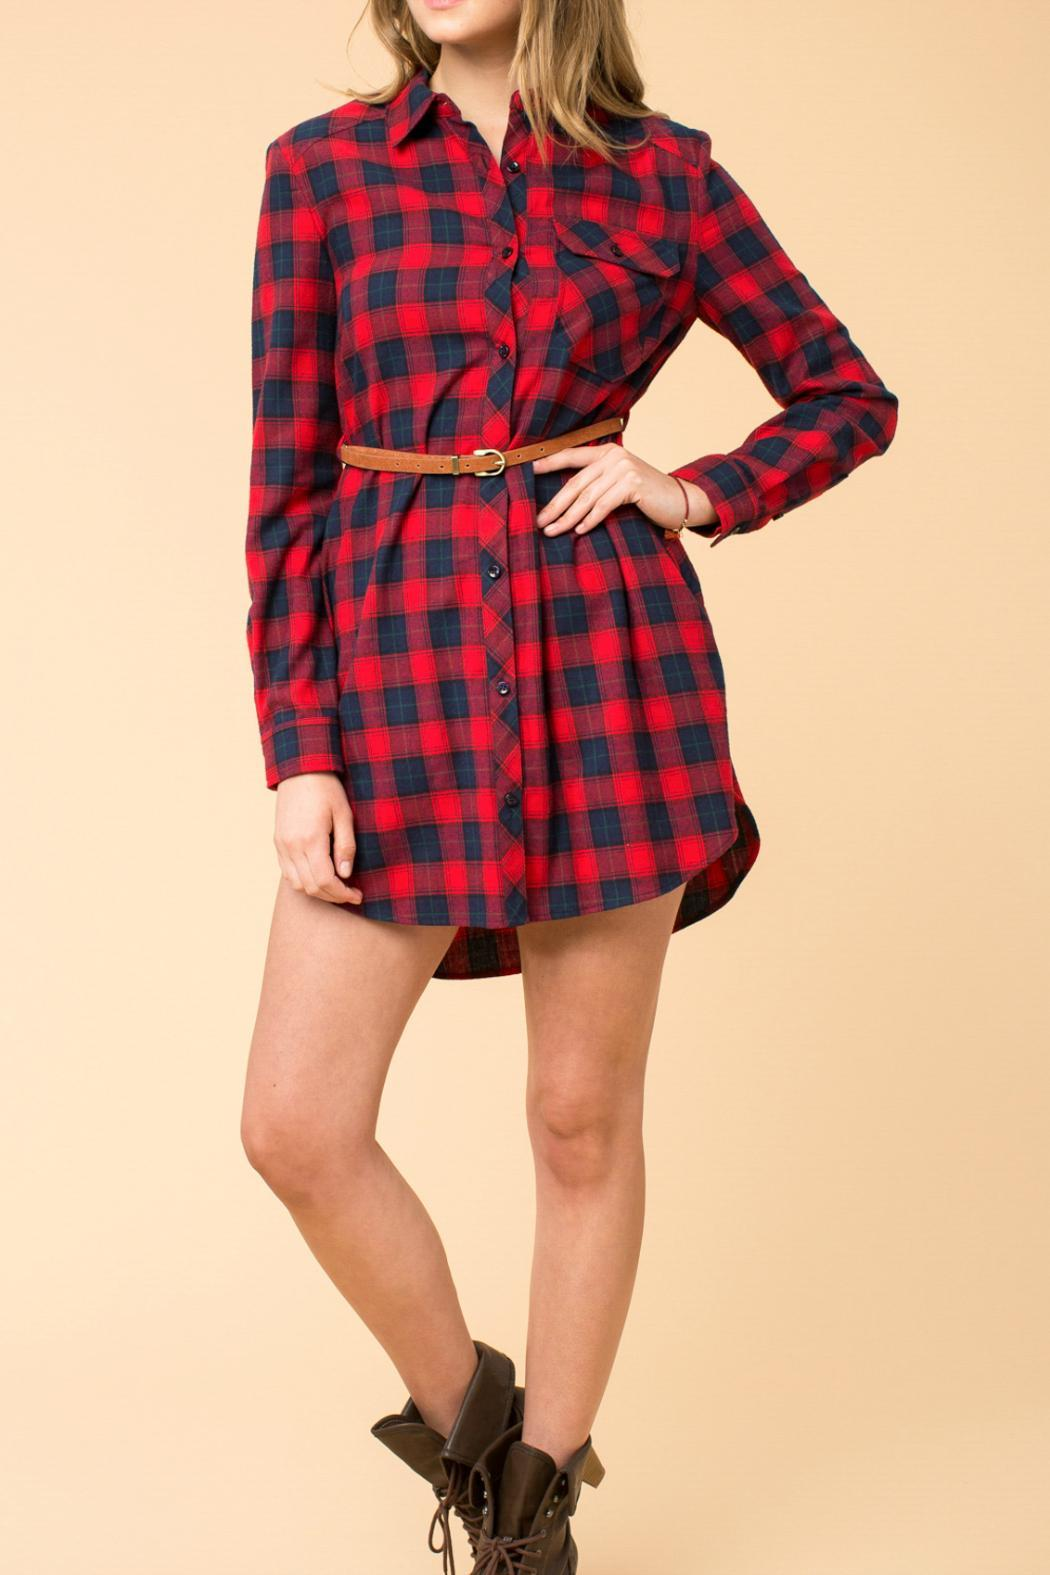 onetheland Red Flannel Dress from Branford by Polished — Shoptiques